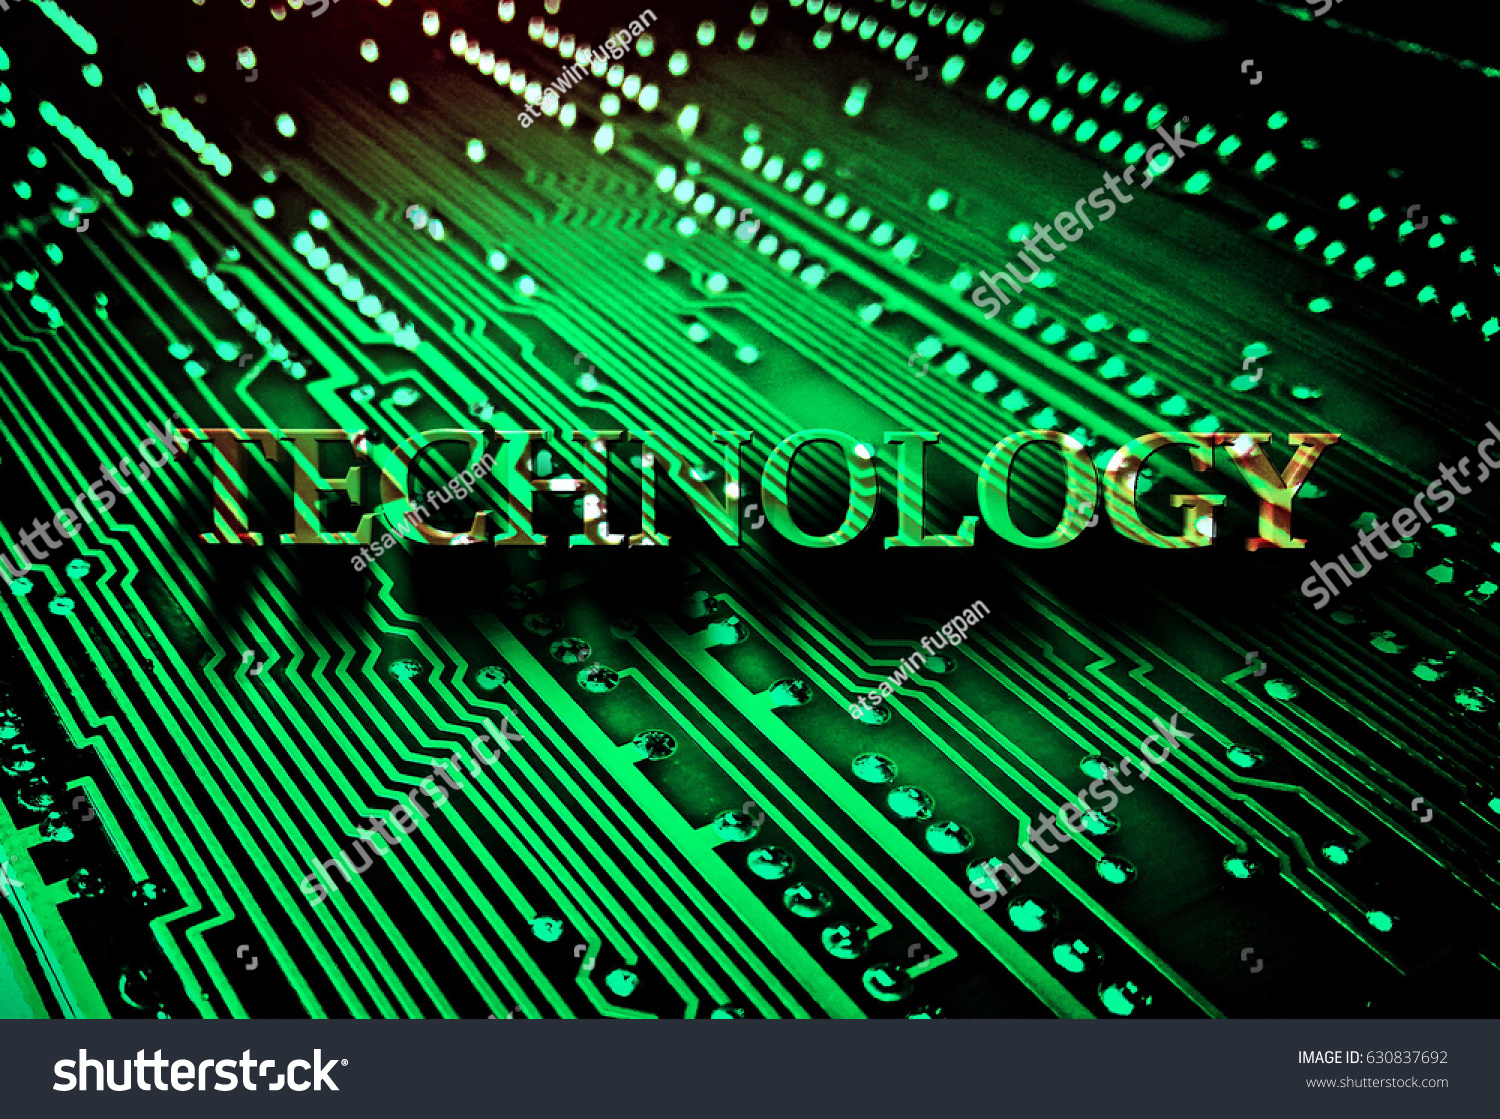 The Word Circuit Schematicscom Dog Repellent Ultrasonic Stock Photo Technology On Line In Board Electronic Green Background 1500x1119